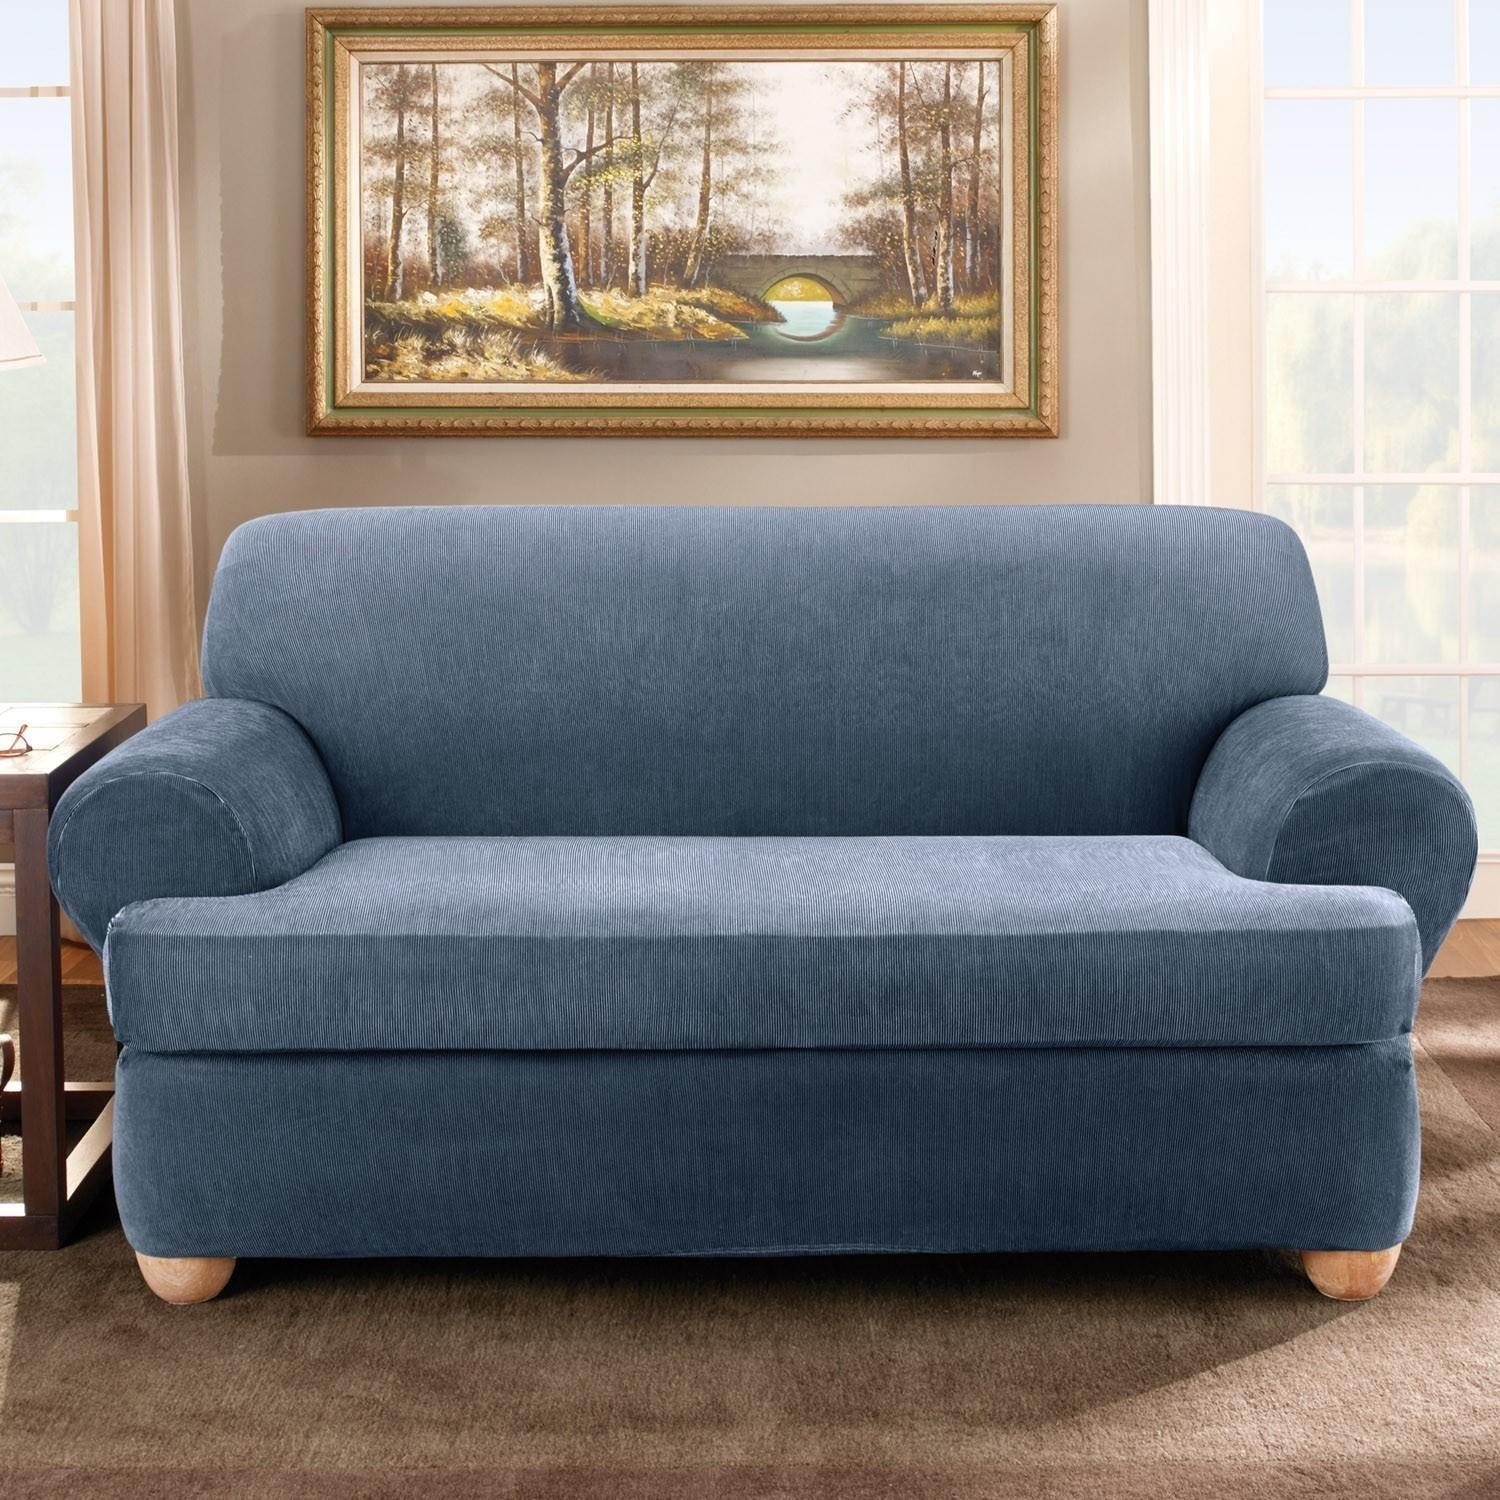 20 Top Loveseat Slipcovers T Cushion Sofa Ideas